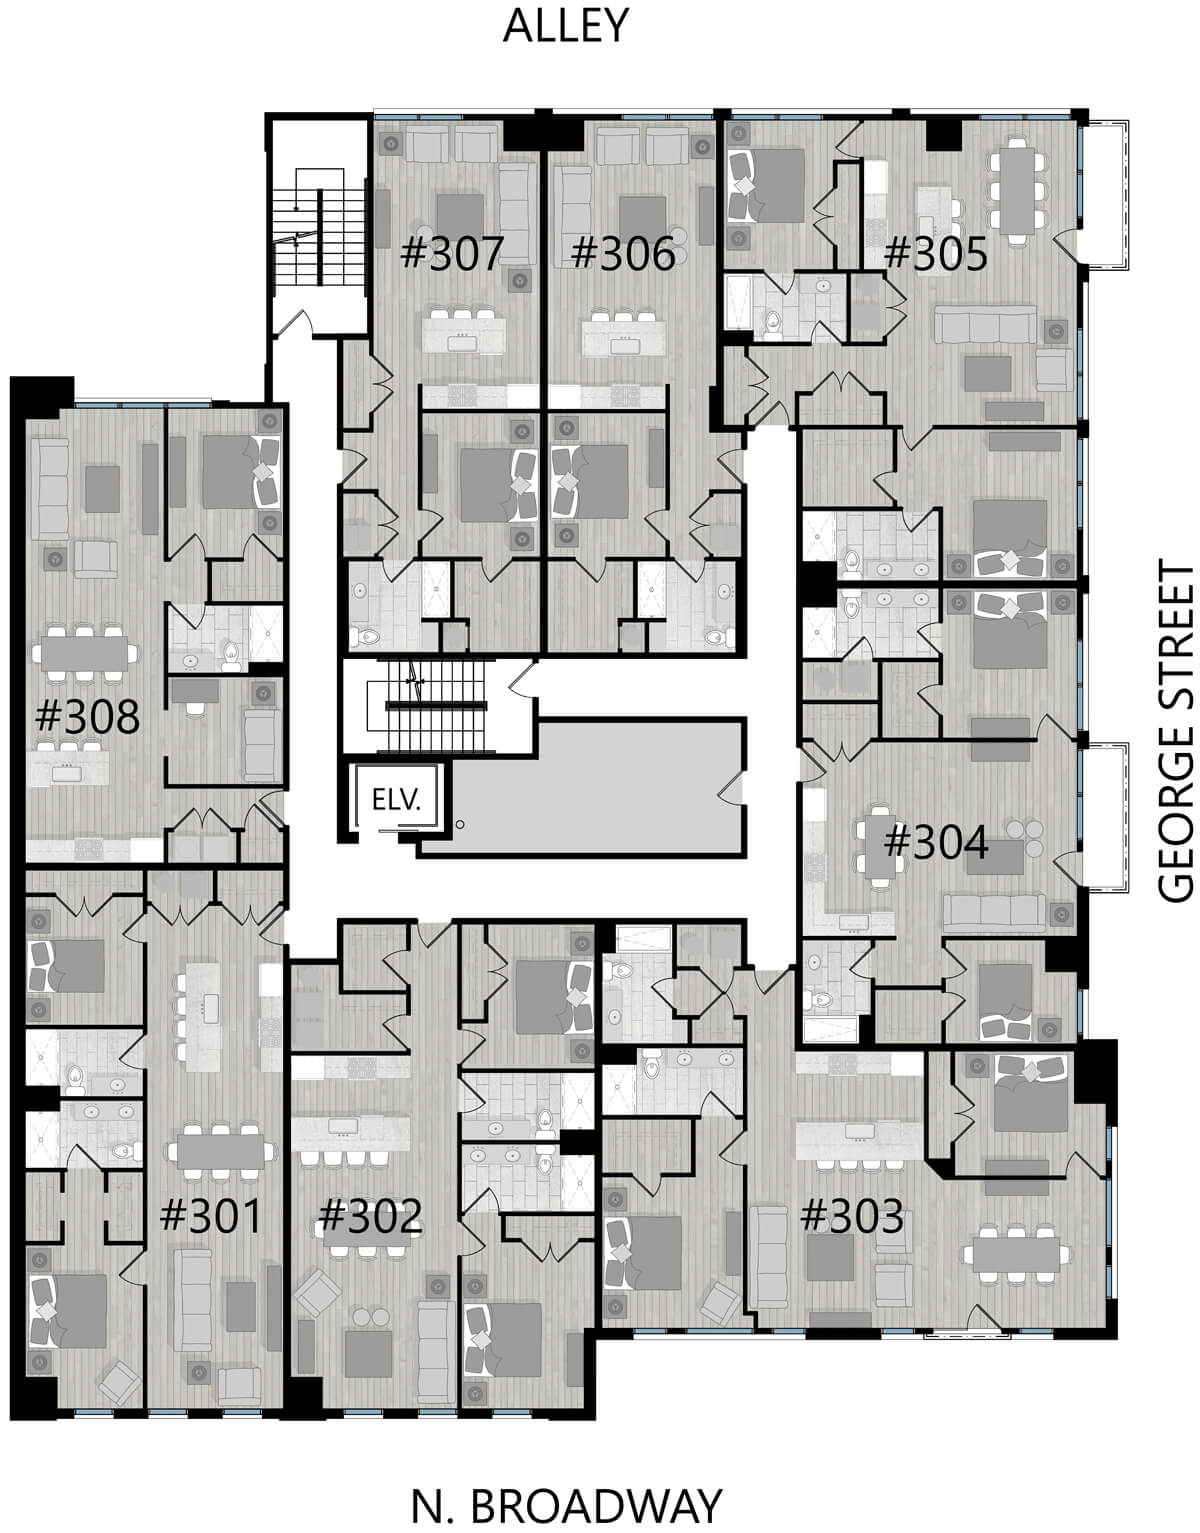 Third floor unit layout